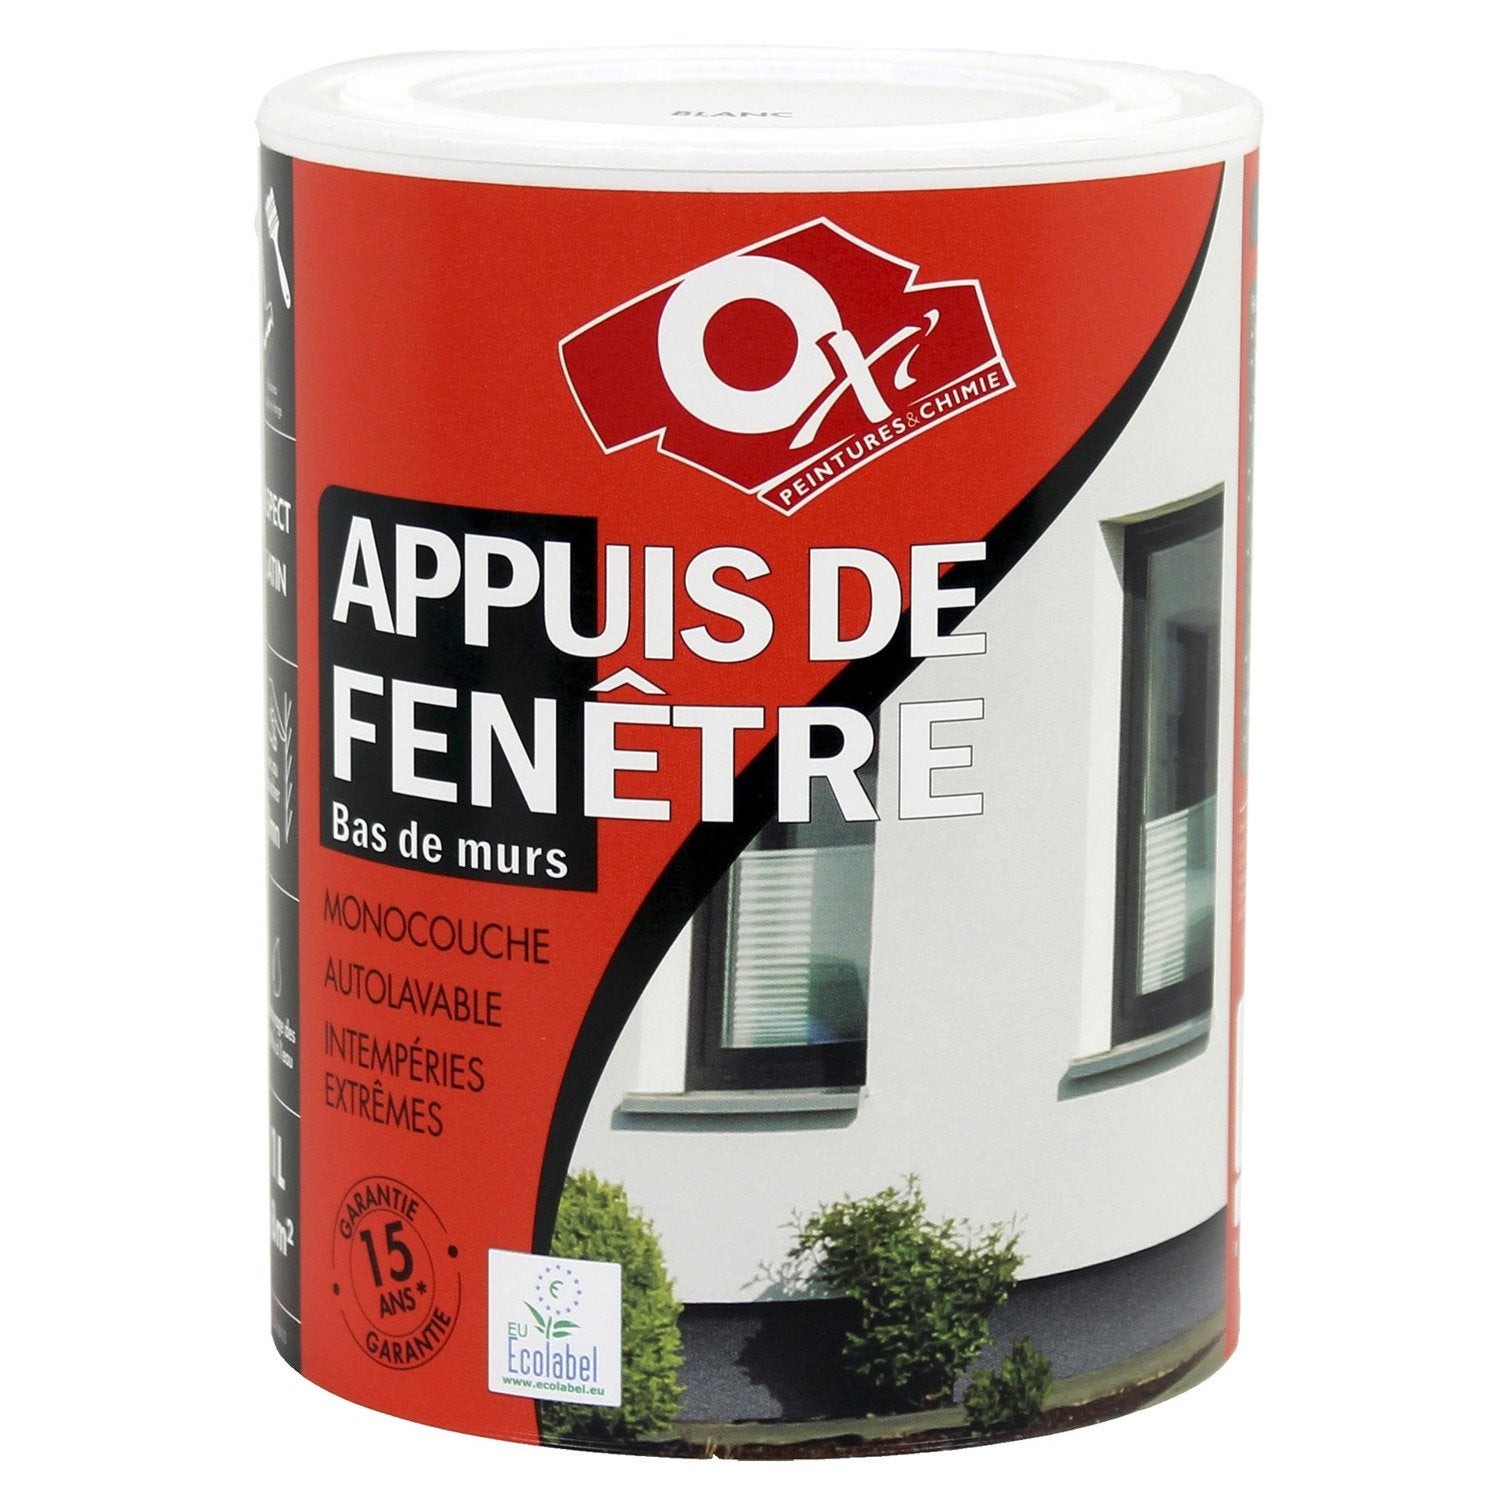 peinture pour appui de fen tre oxytol blanc 1 l leroy. Black Bedroom Furniture Sets. Home Design Ideas